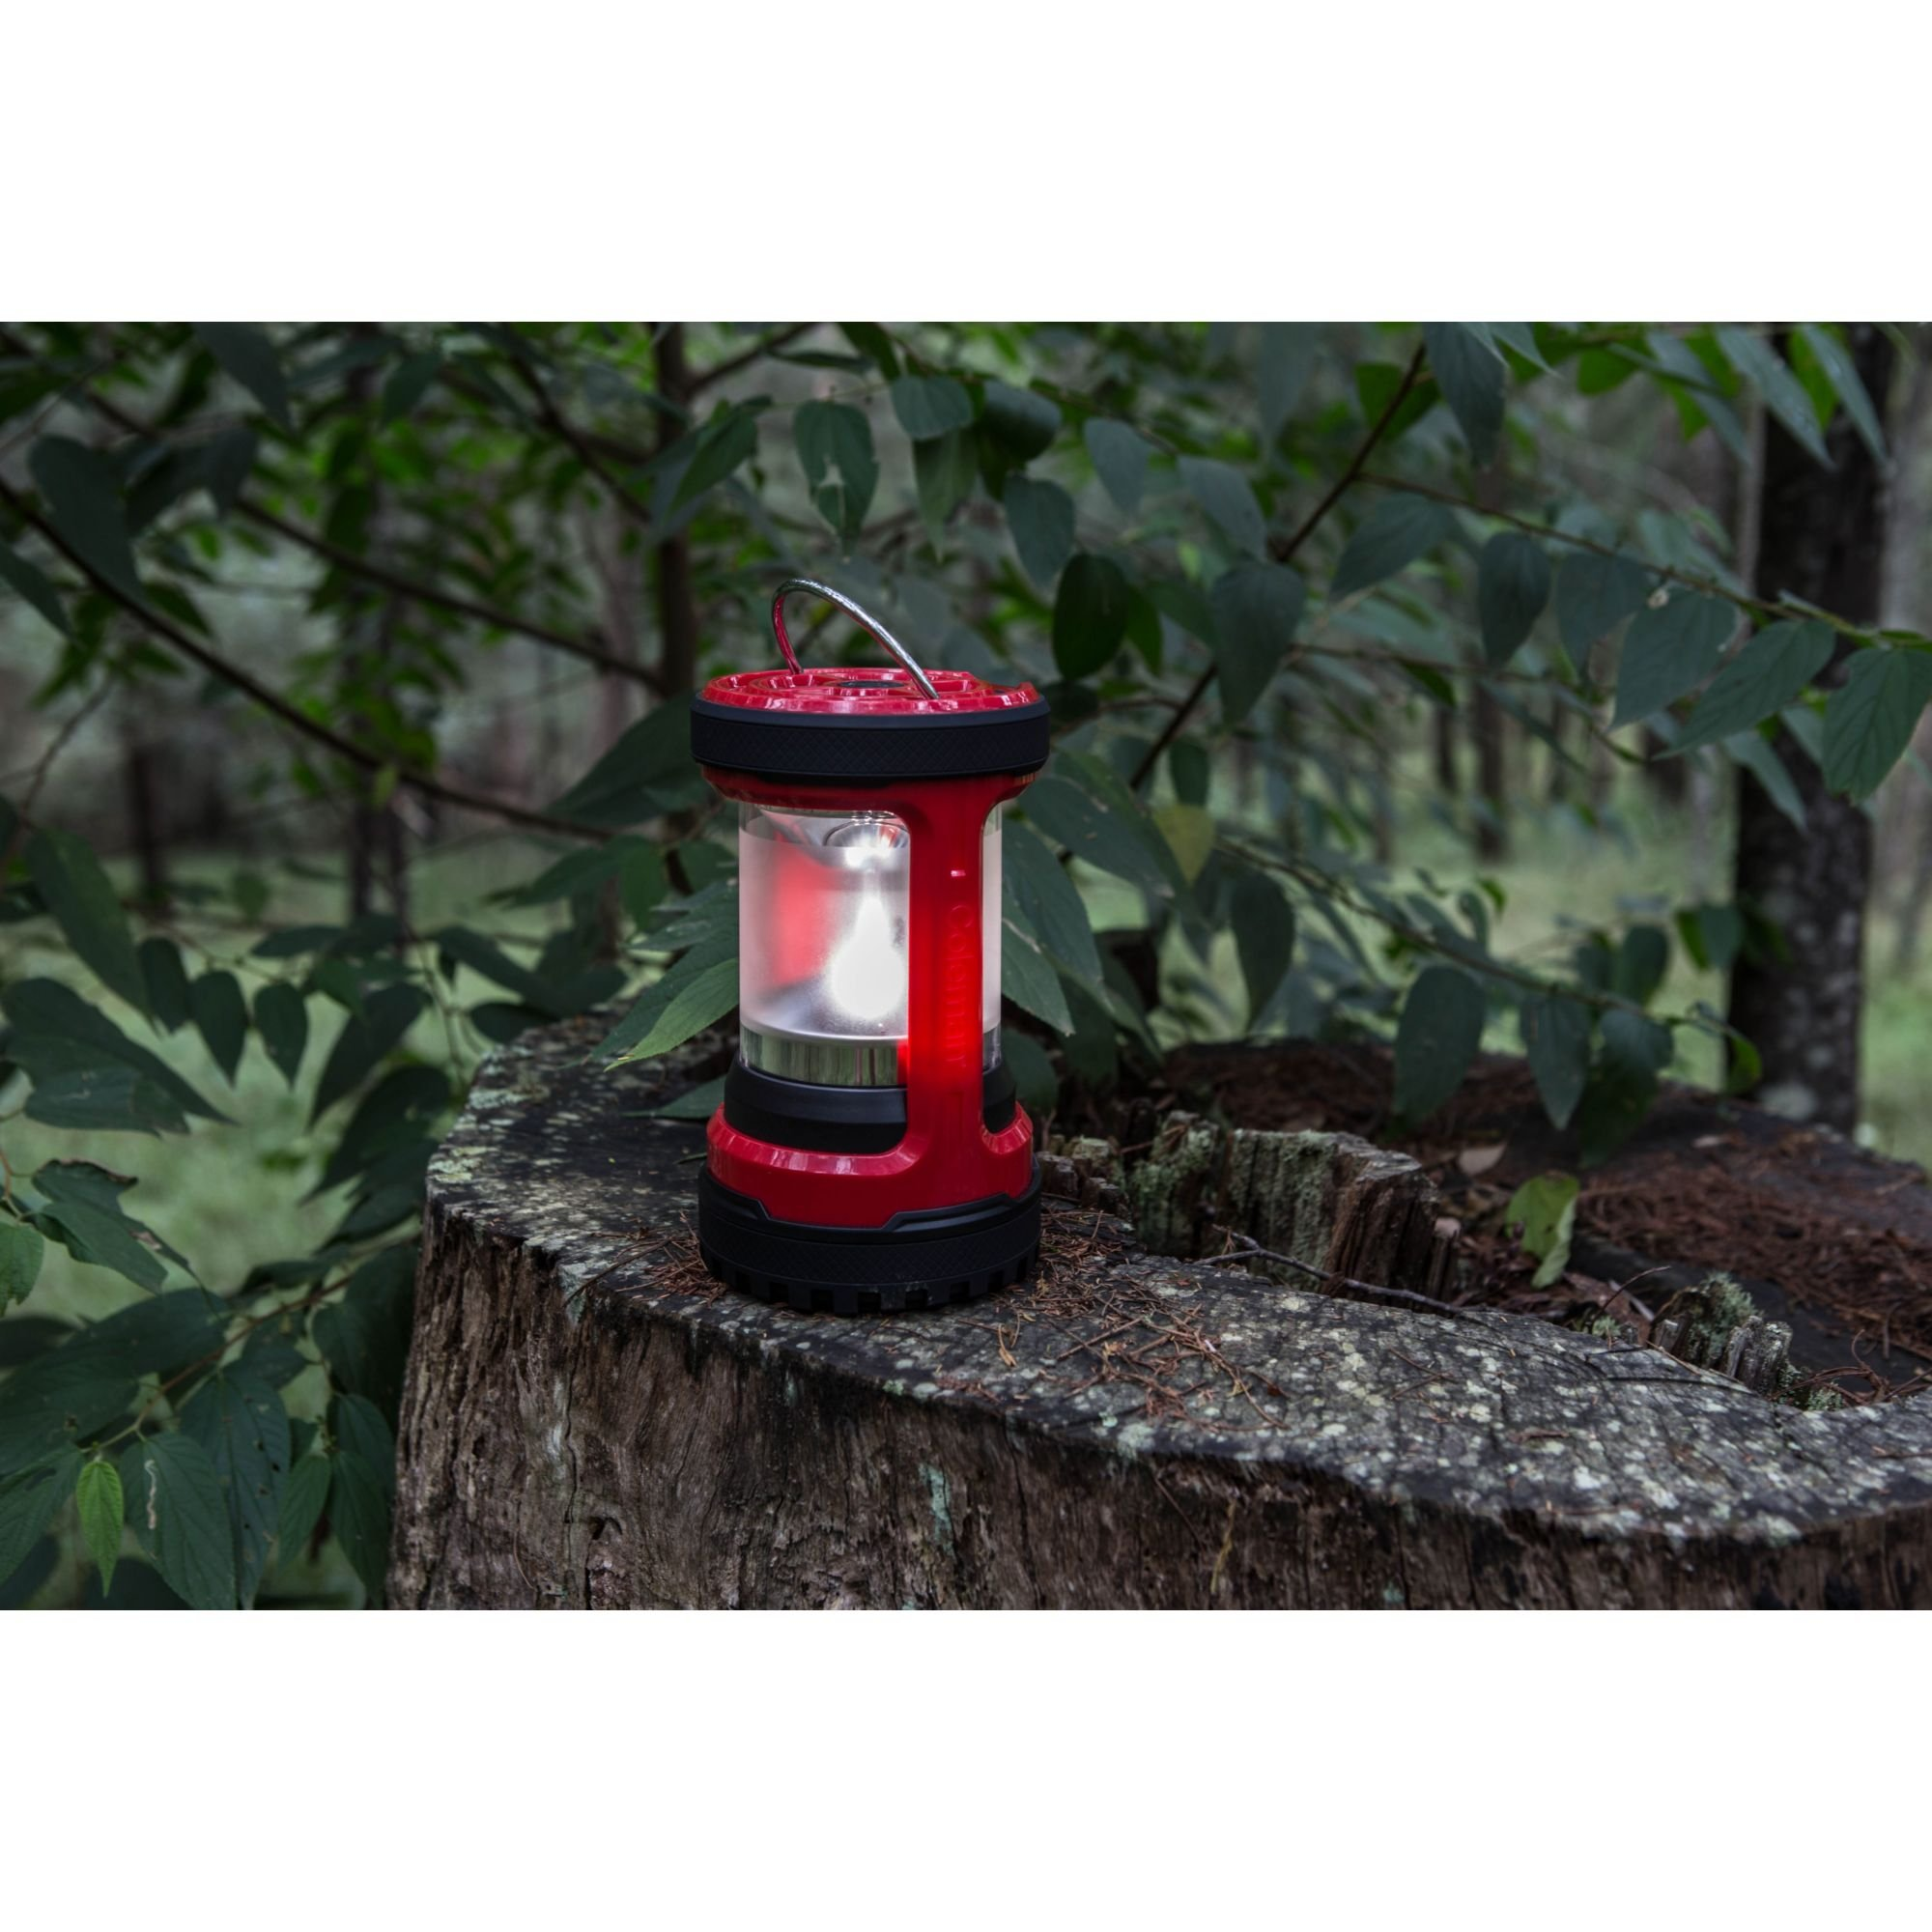 Coleman Divide+ Push 425 lm LED Lantern by Coleman